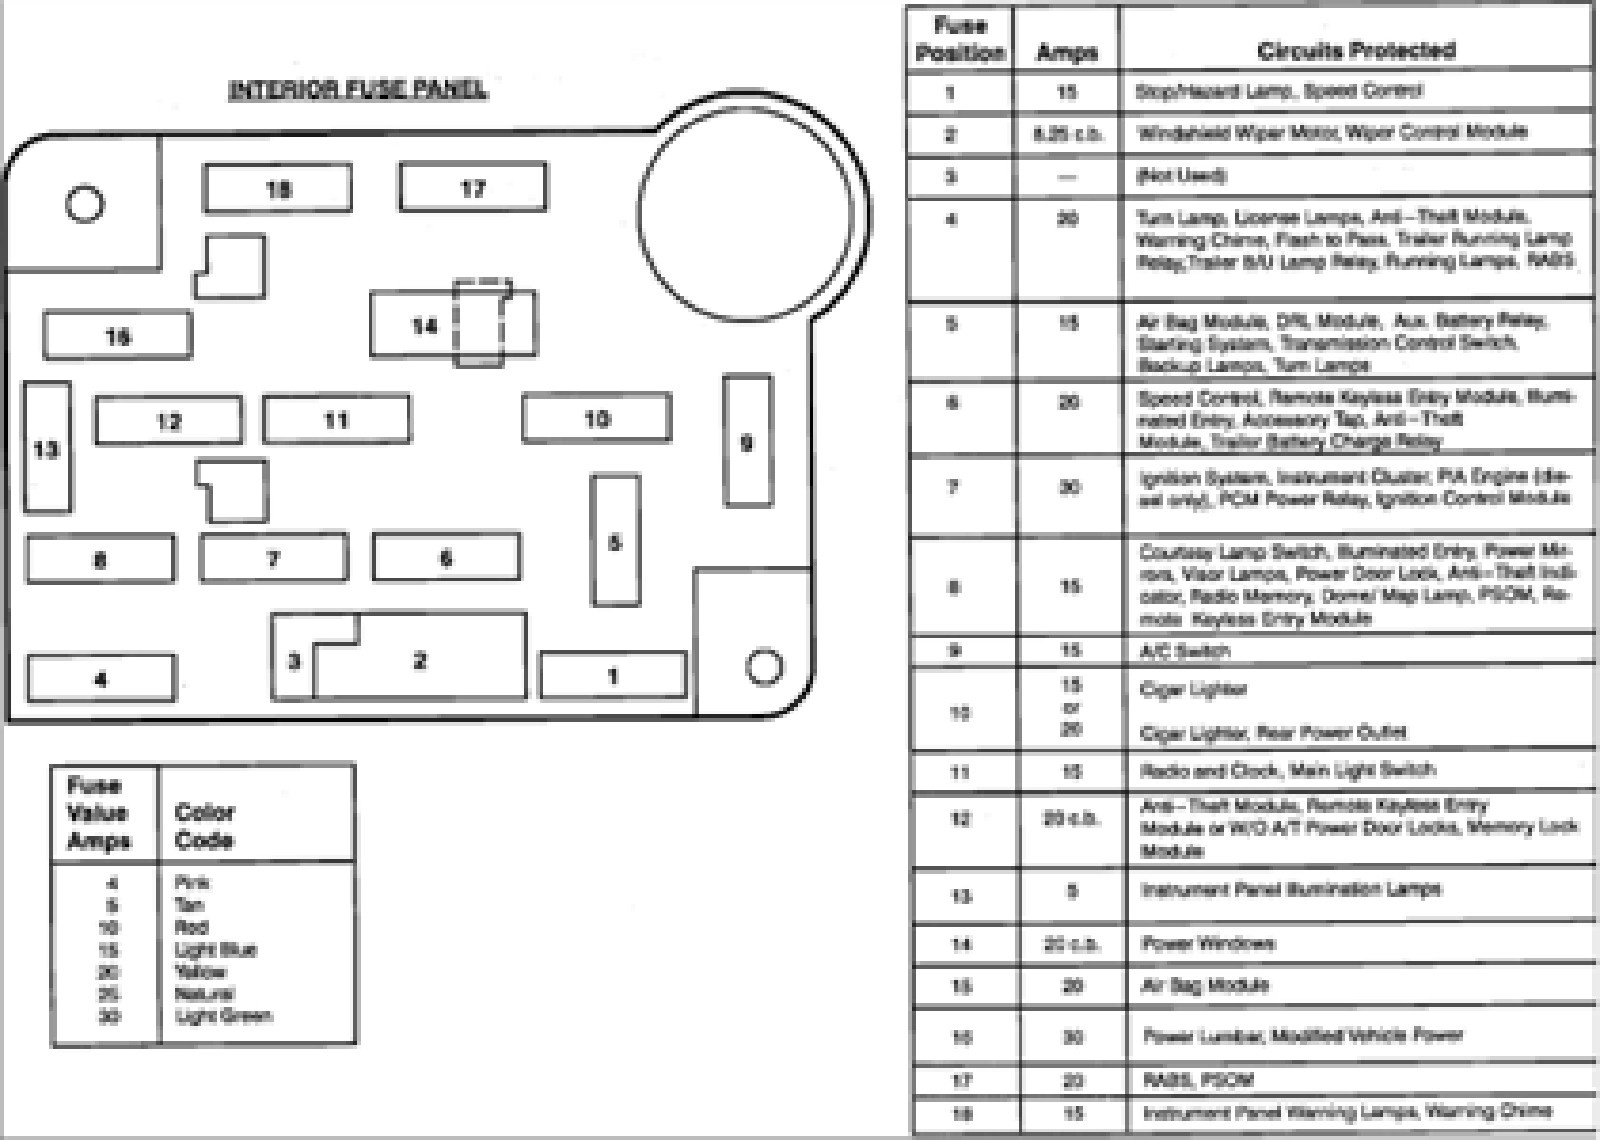 98 ford e150 fuse diagram  | 960 x 658